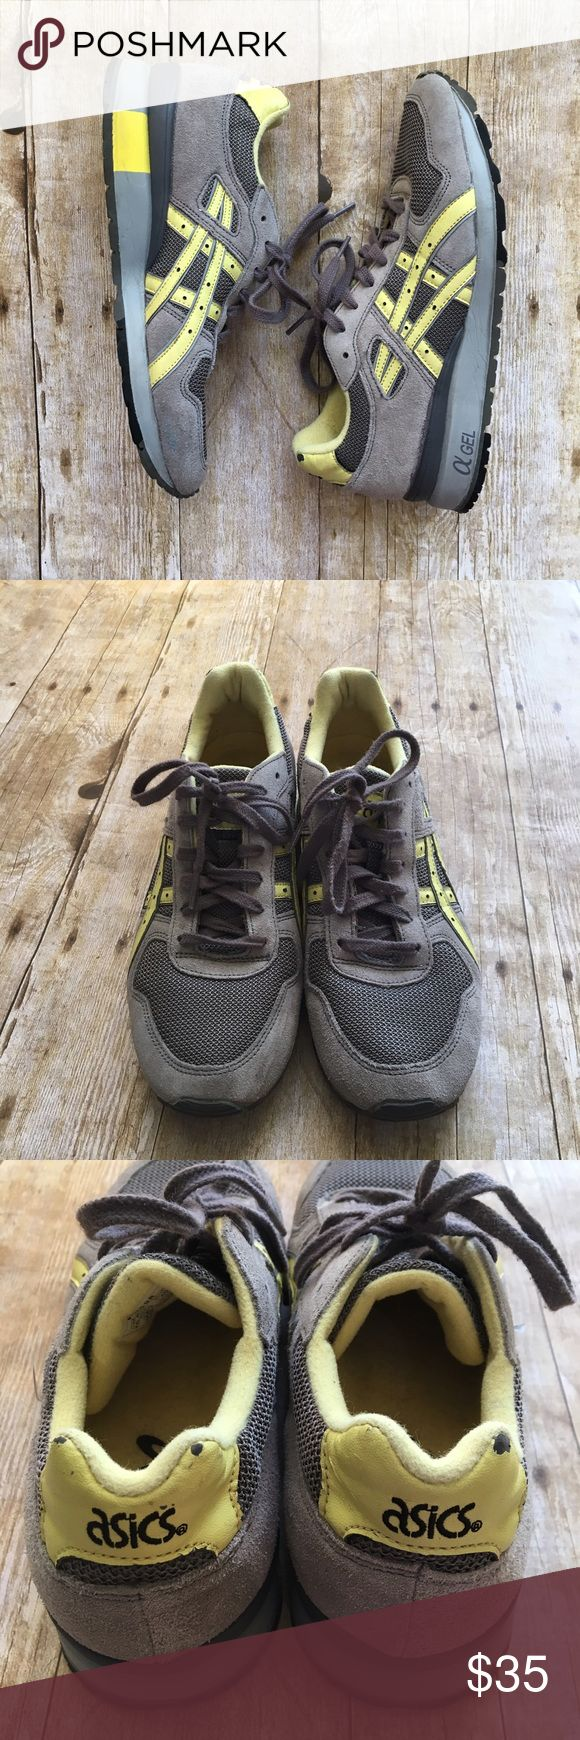 Asics sneakers Comfortable sneaker in grey and yellow colors. Some wear on the top back of sneaker, where some yellow came off {see photo}  bottom of shoes are still in good condition and have good traction.  •Smoke free home•  no trades. Offers welcome : ) Asics Shoes Sneakers